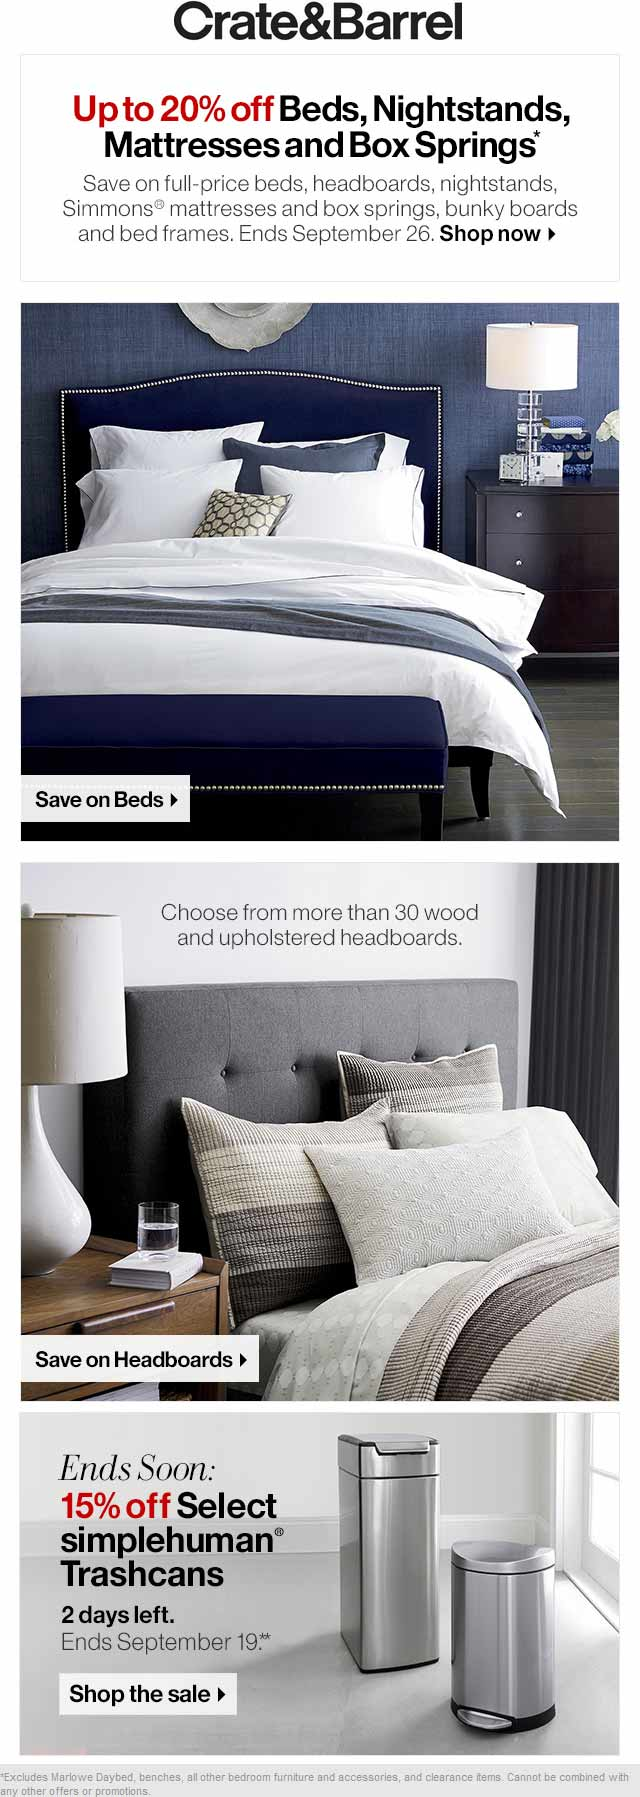 Crate & Barrel Coupon February 2018 20% off beds & mattresses at Crate & Barrel